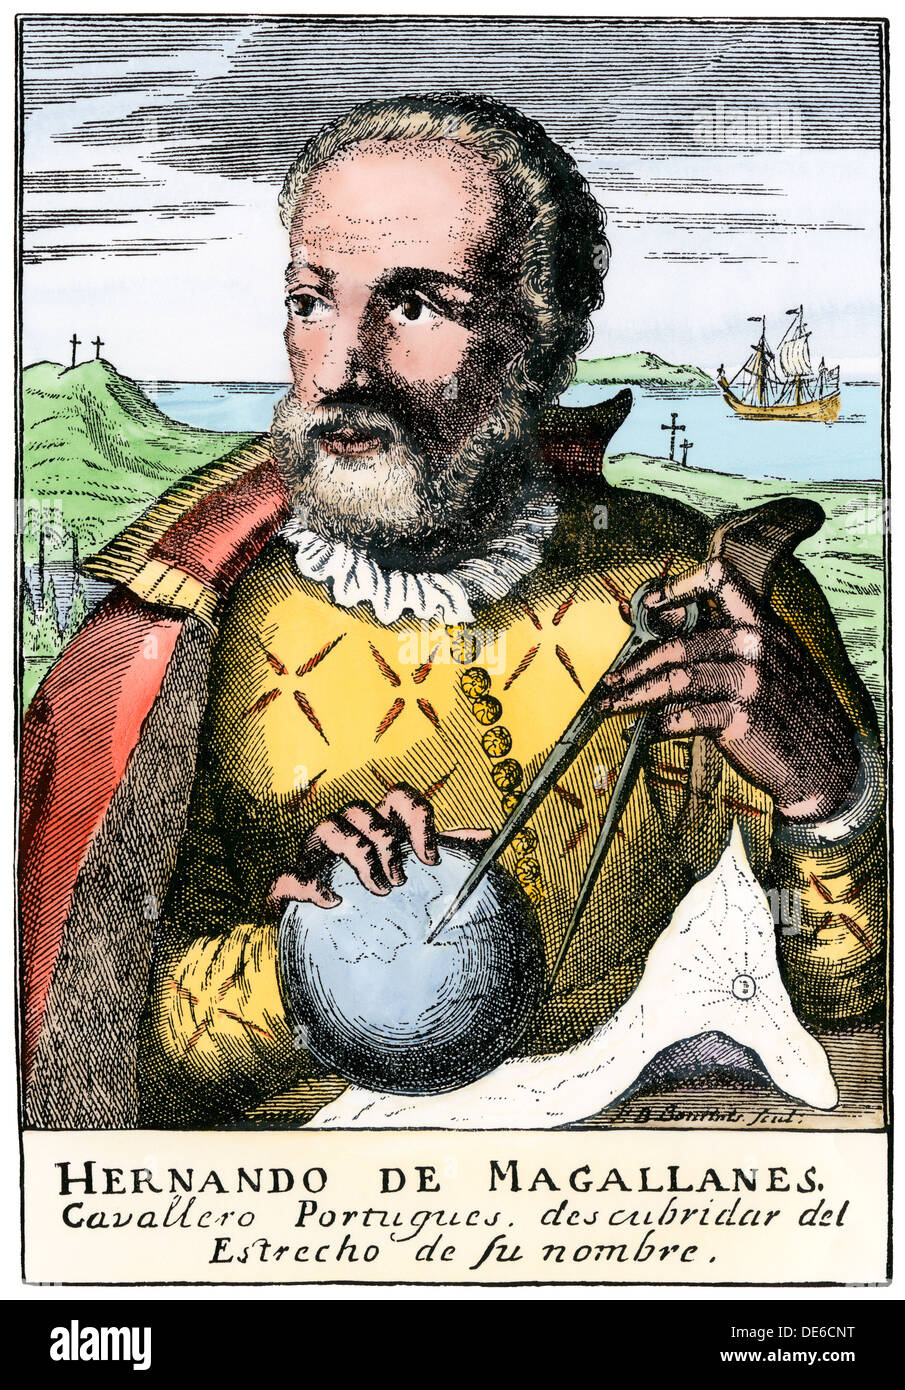 Magellan holding calipers, from engraving in Hererra. Hand-colored woodcut - Stock Image